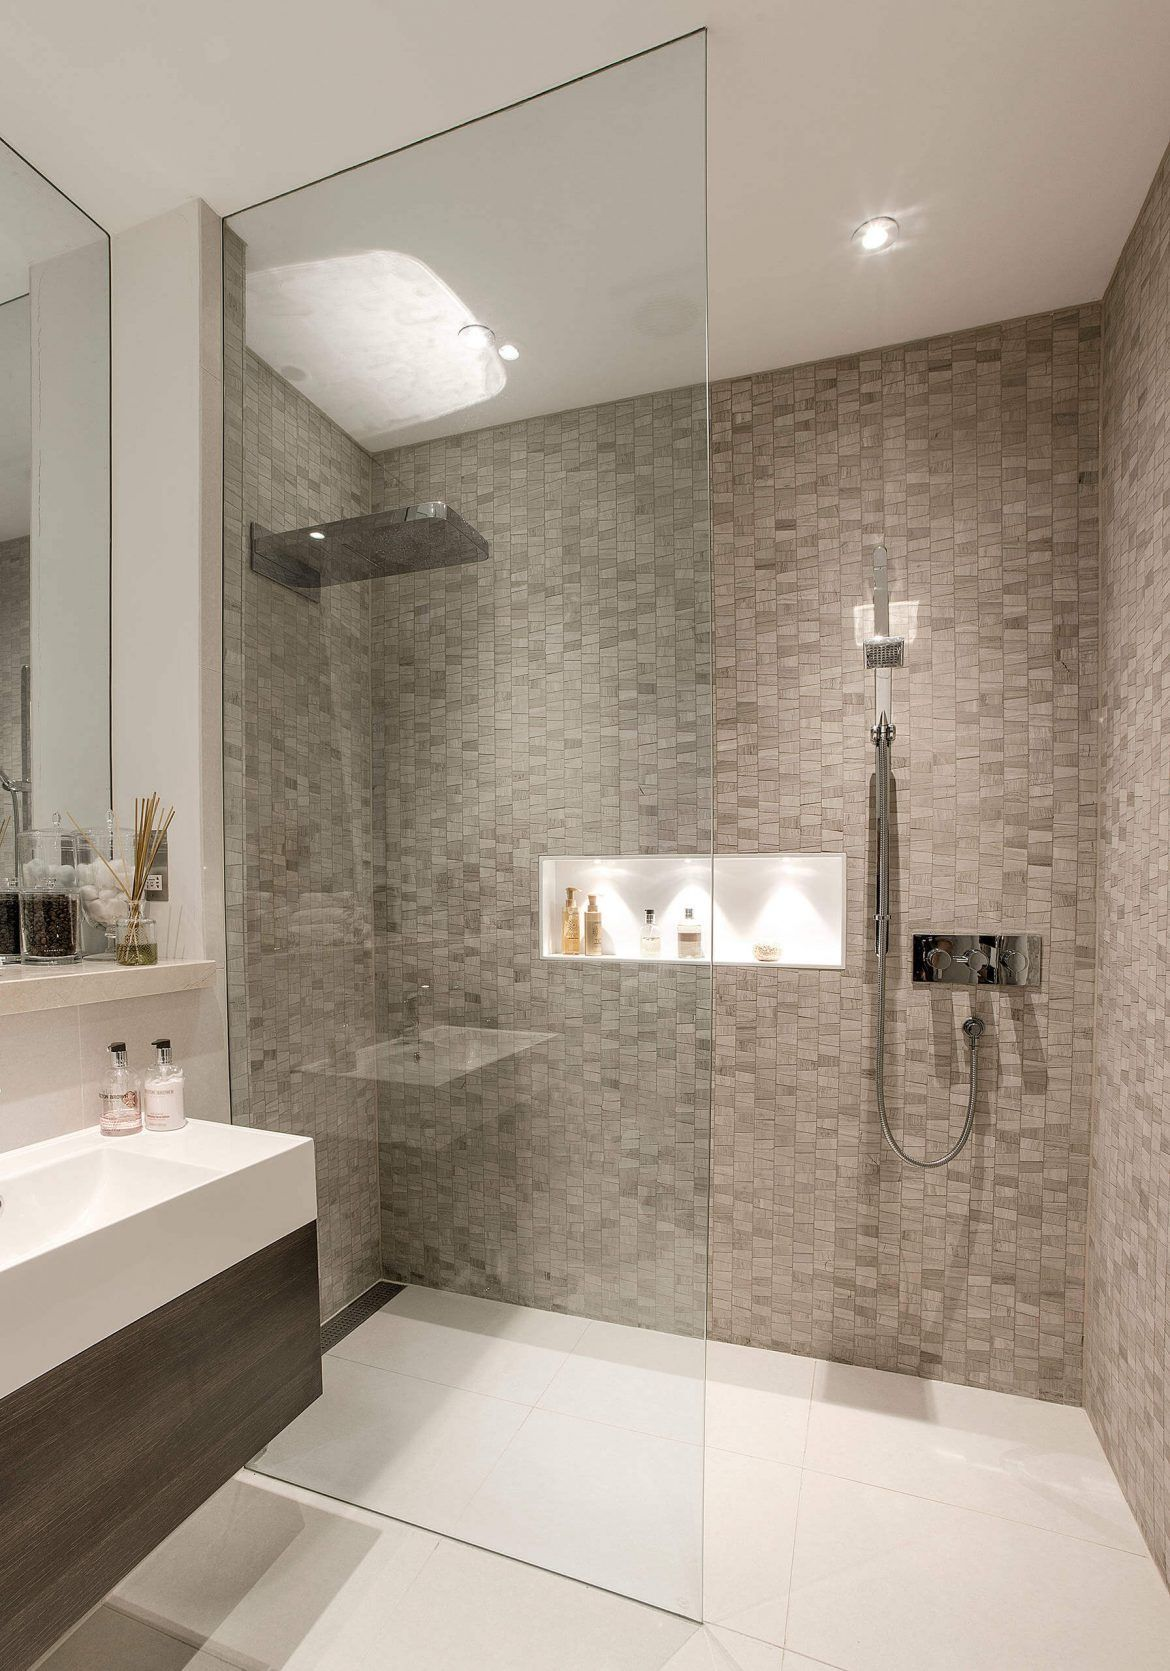 44 Modern Shower Tile Ideas And Designs 2020 Edition Shower Room Modern Bathroom Decor Bathroom Shower Design